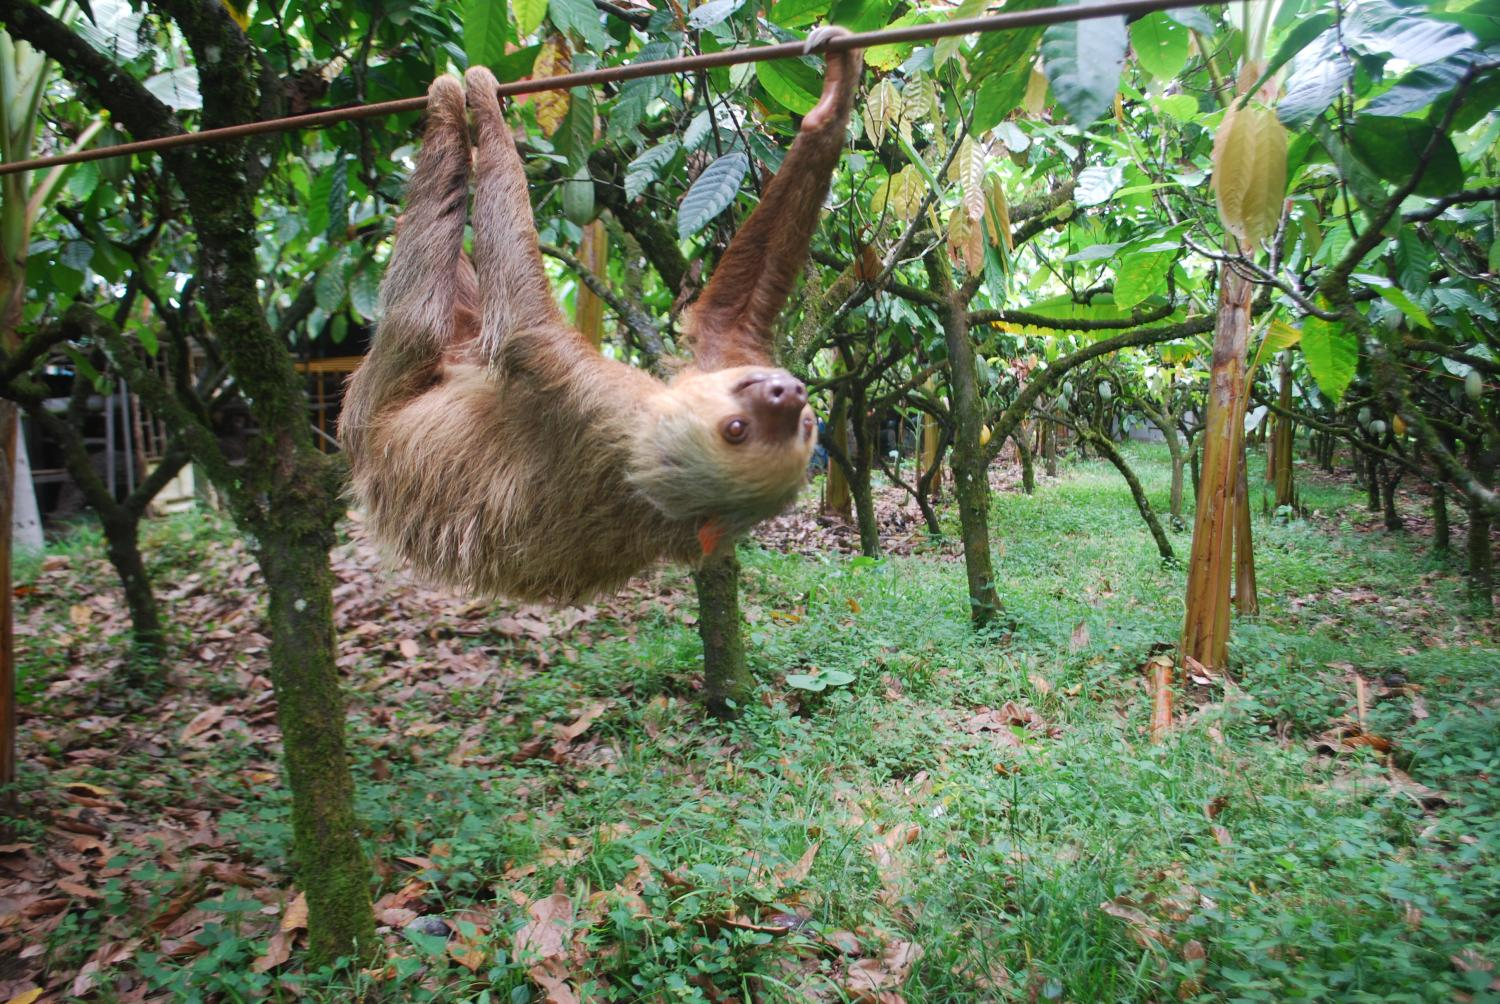 putting the sloth in sloths arboreal lifestyle drives slow motion pace